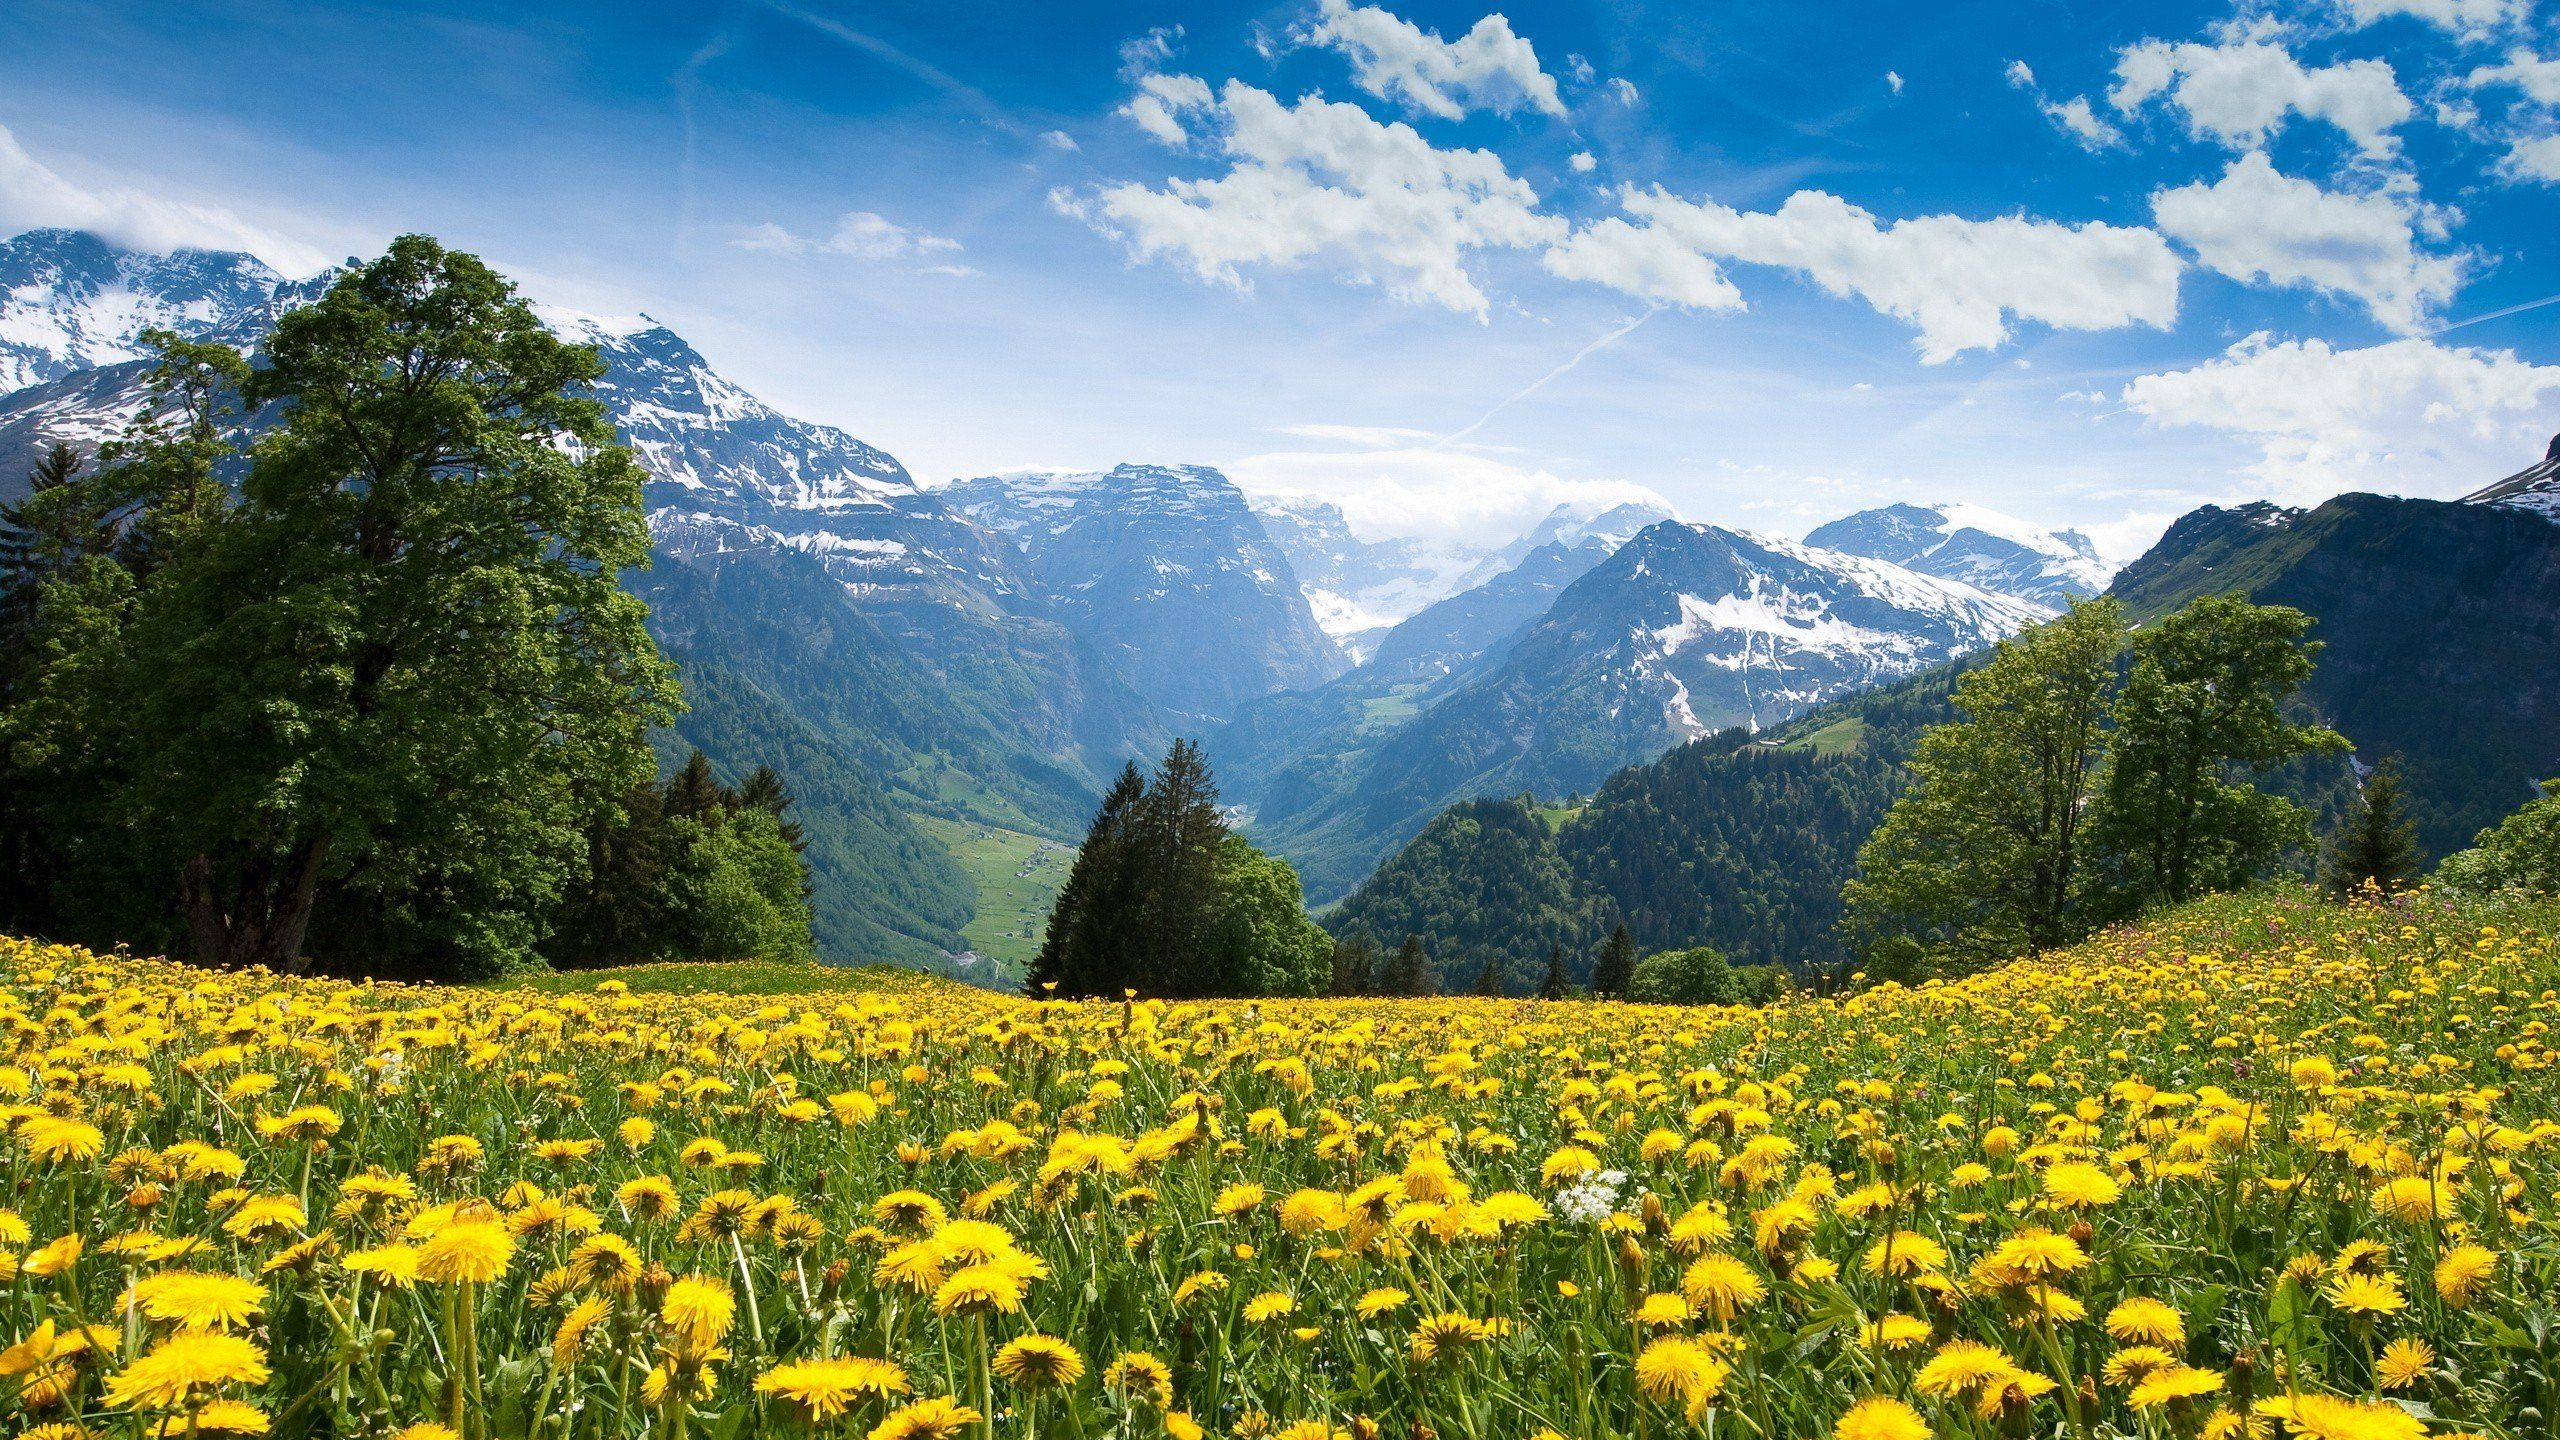 Beautiful Spring Landscape Wallpaper Wide with High